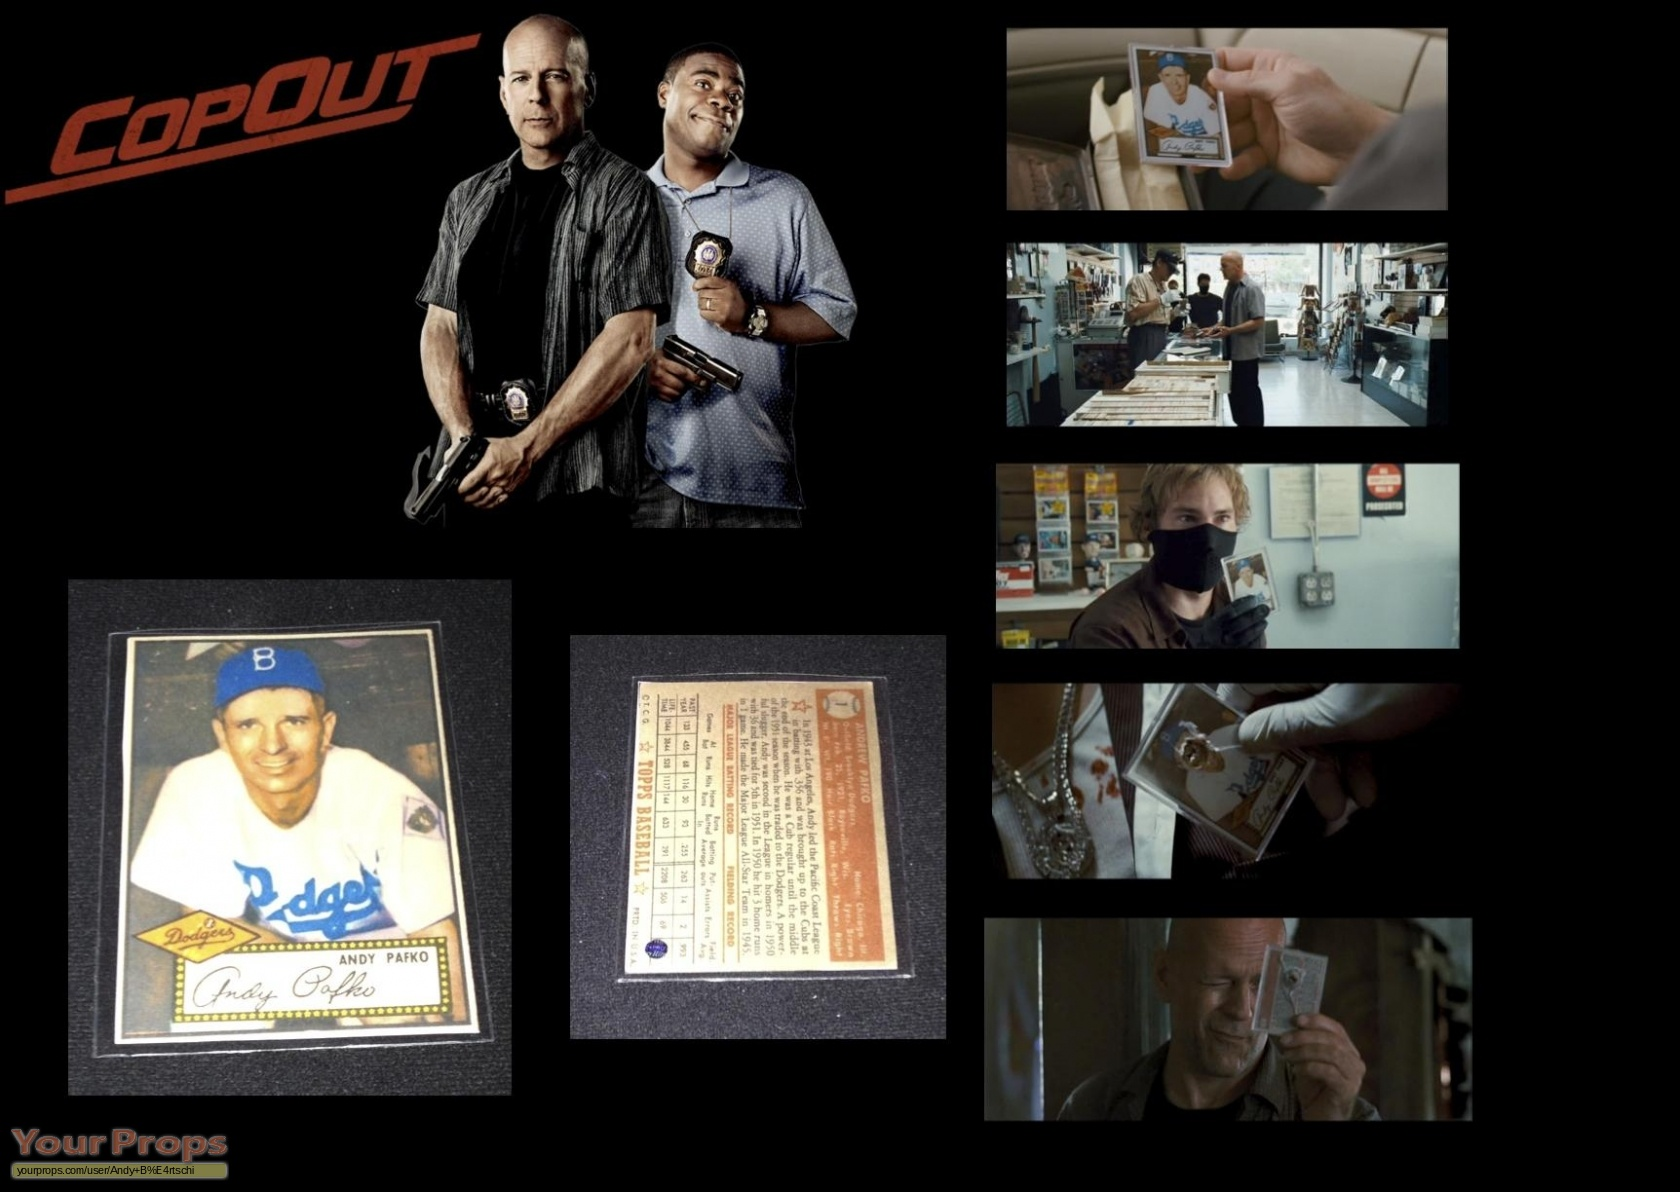 Cop Out Andy Pafko Baseball Card Original Movie Prop